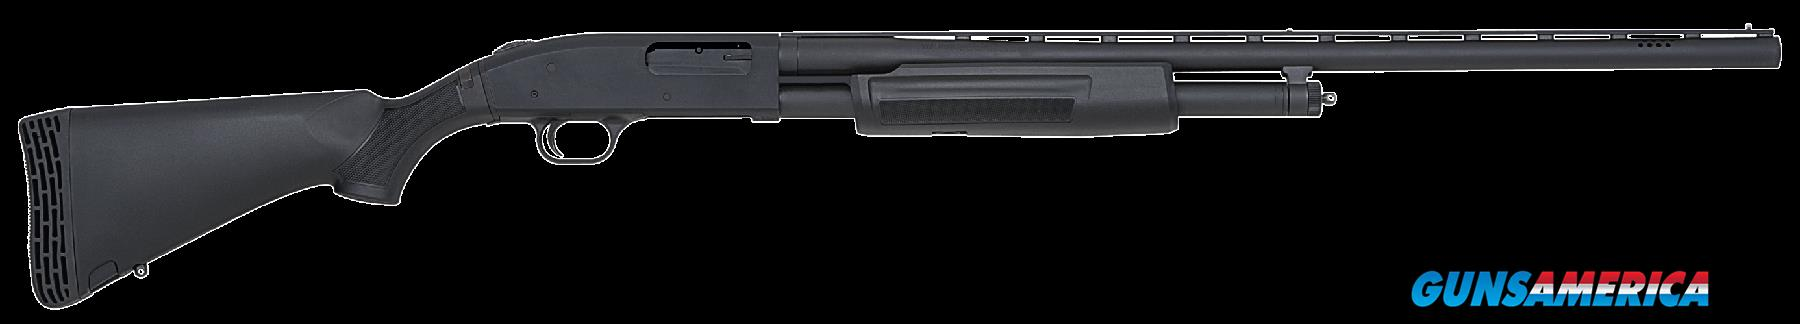 "Mossberg 50121 500 FLEX All Purpose Pump 12 Gauge 28"" 3"" Black Synthetic Stk Black Rcvr  Guns > Shotguns > MN Misc Shotguns"